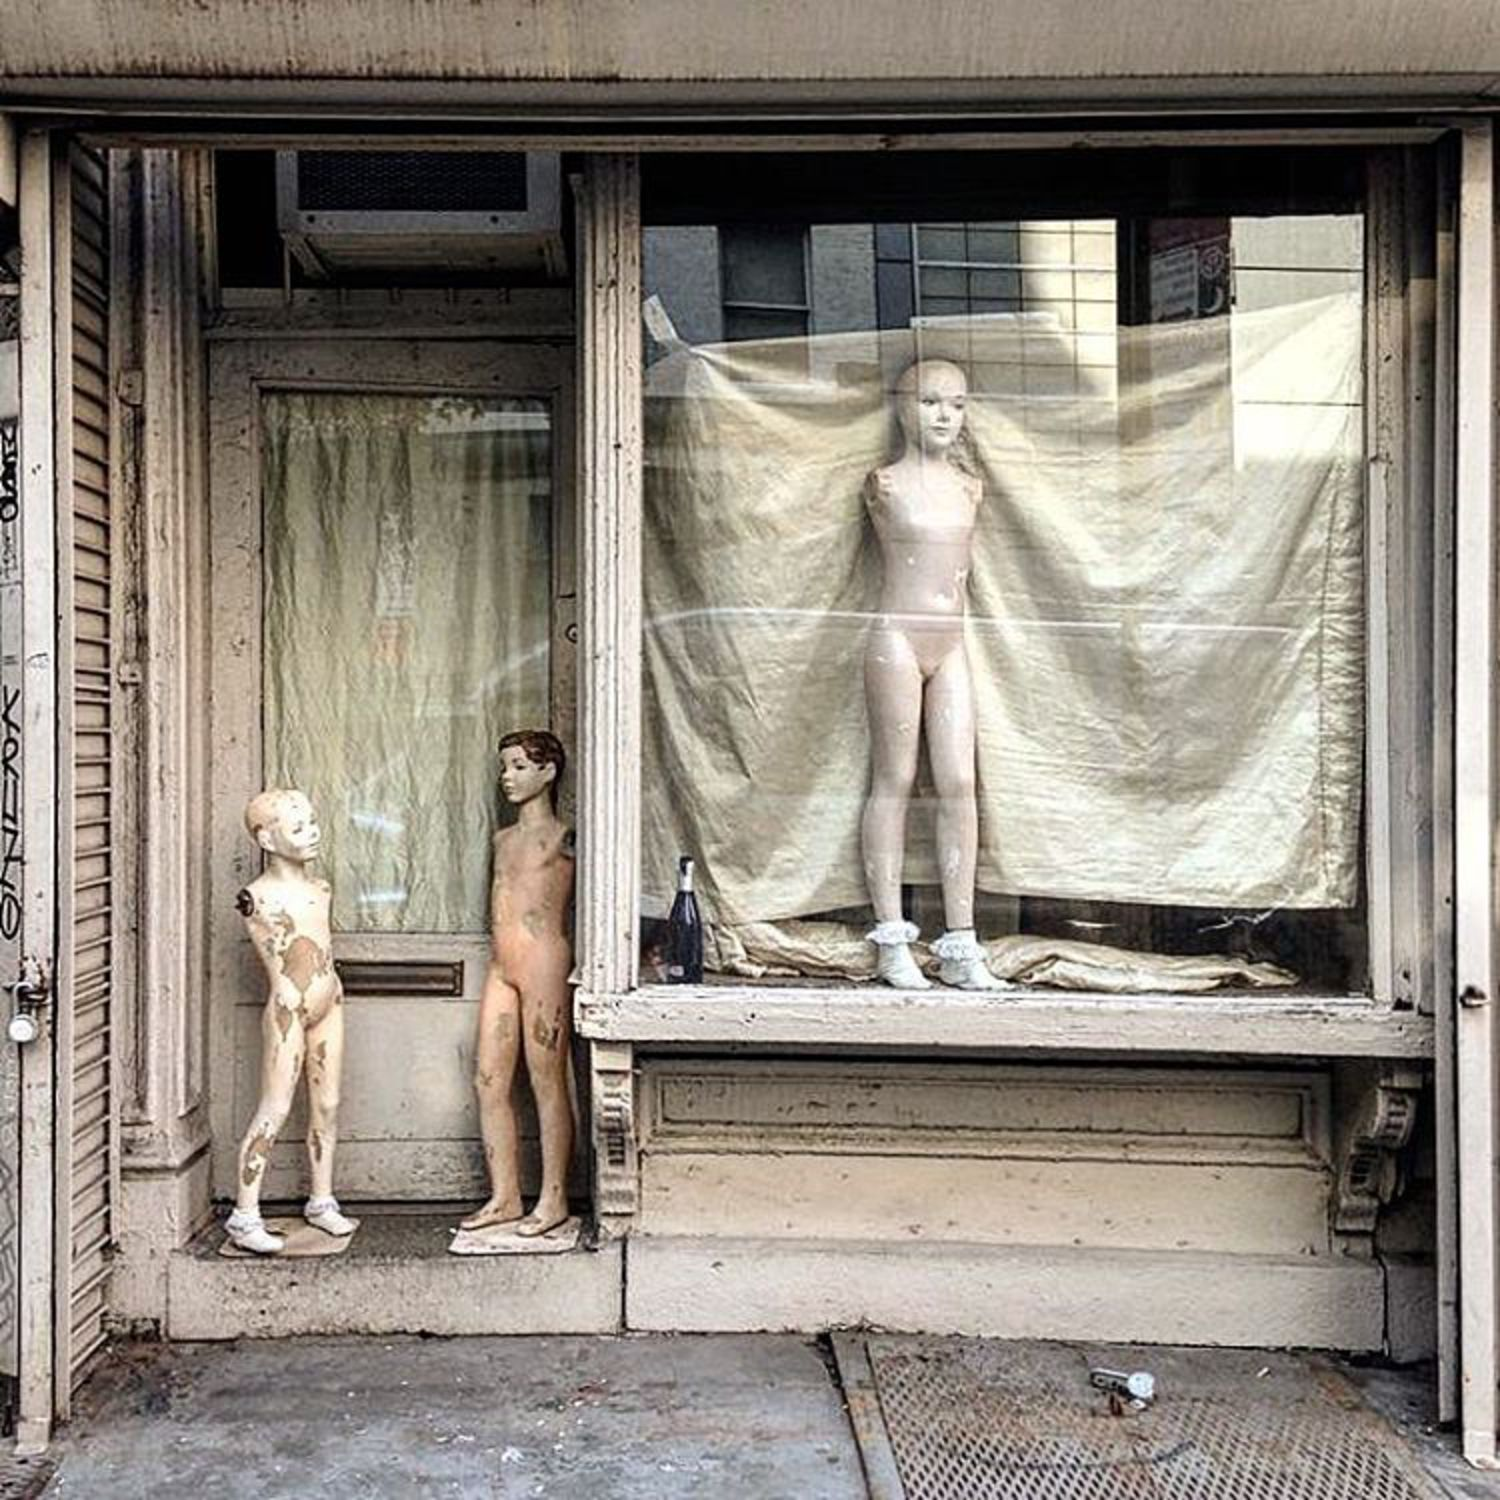 The family are in their new home.  #theinutiliousretailer #retaildesign #mannequin #newyork #lowereastside